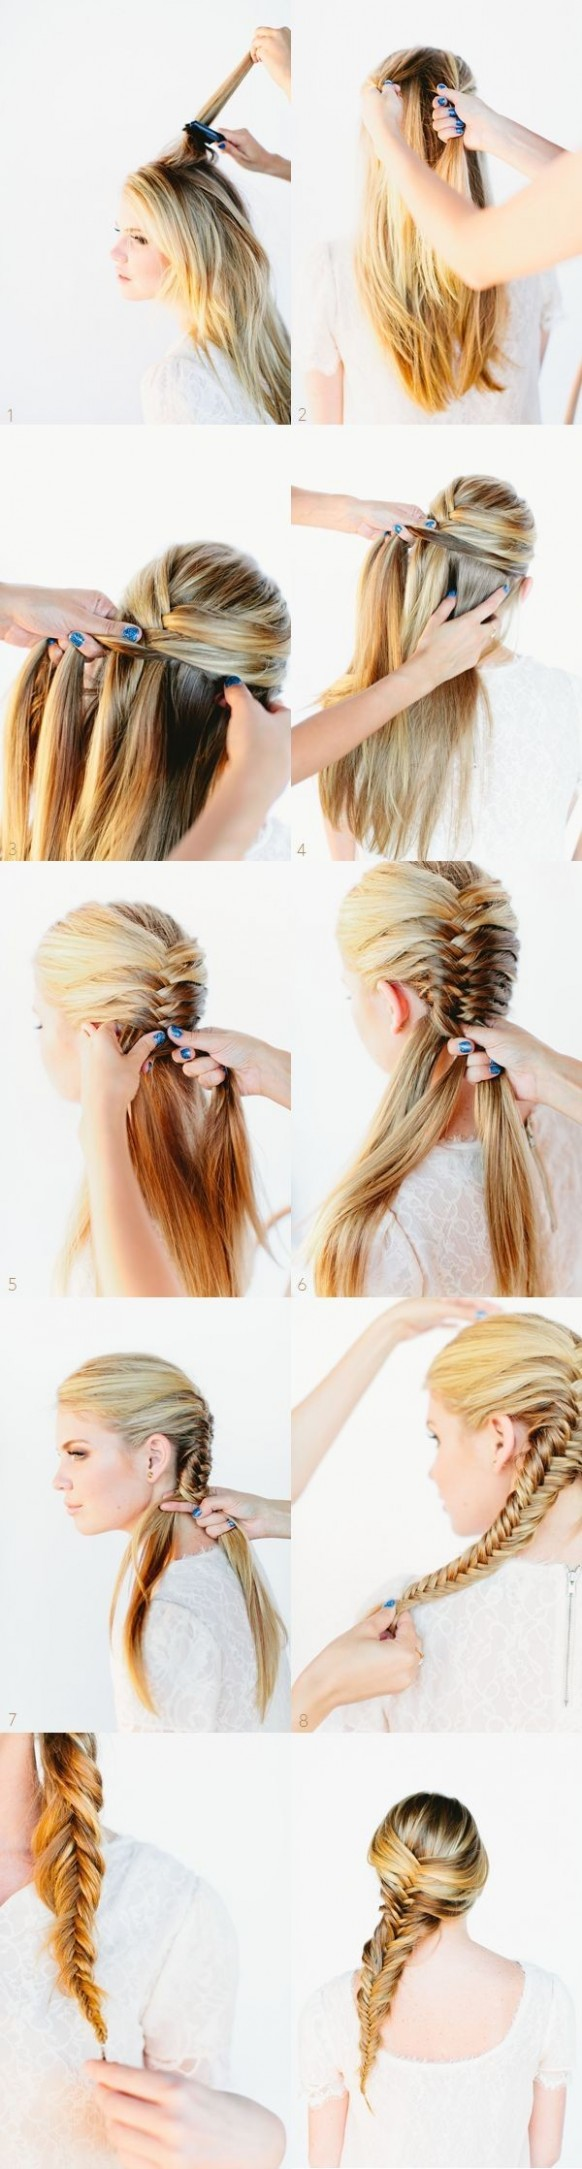 11 Cute Hairstyles: Step By Step Hairstyles For Long Hair Hairstyles For Long Hair Step By Step